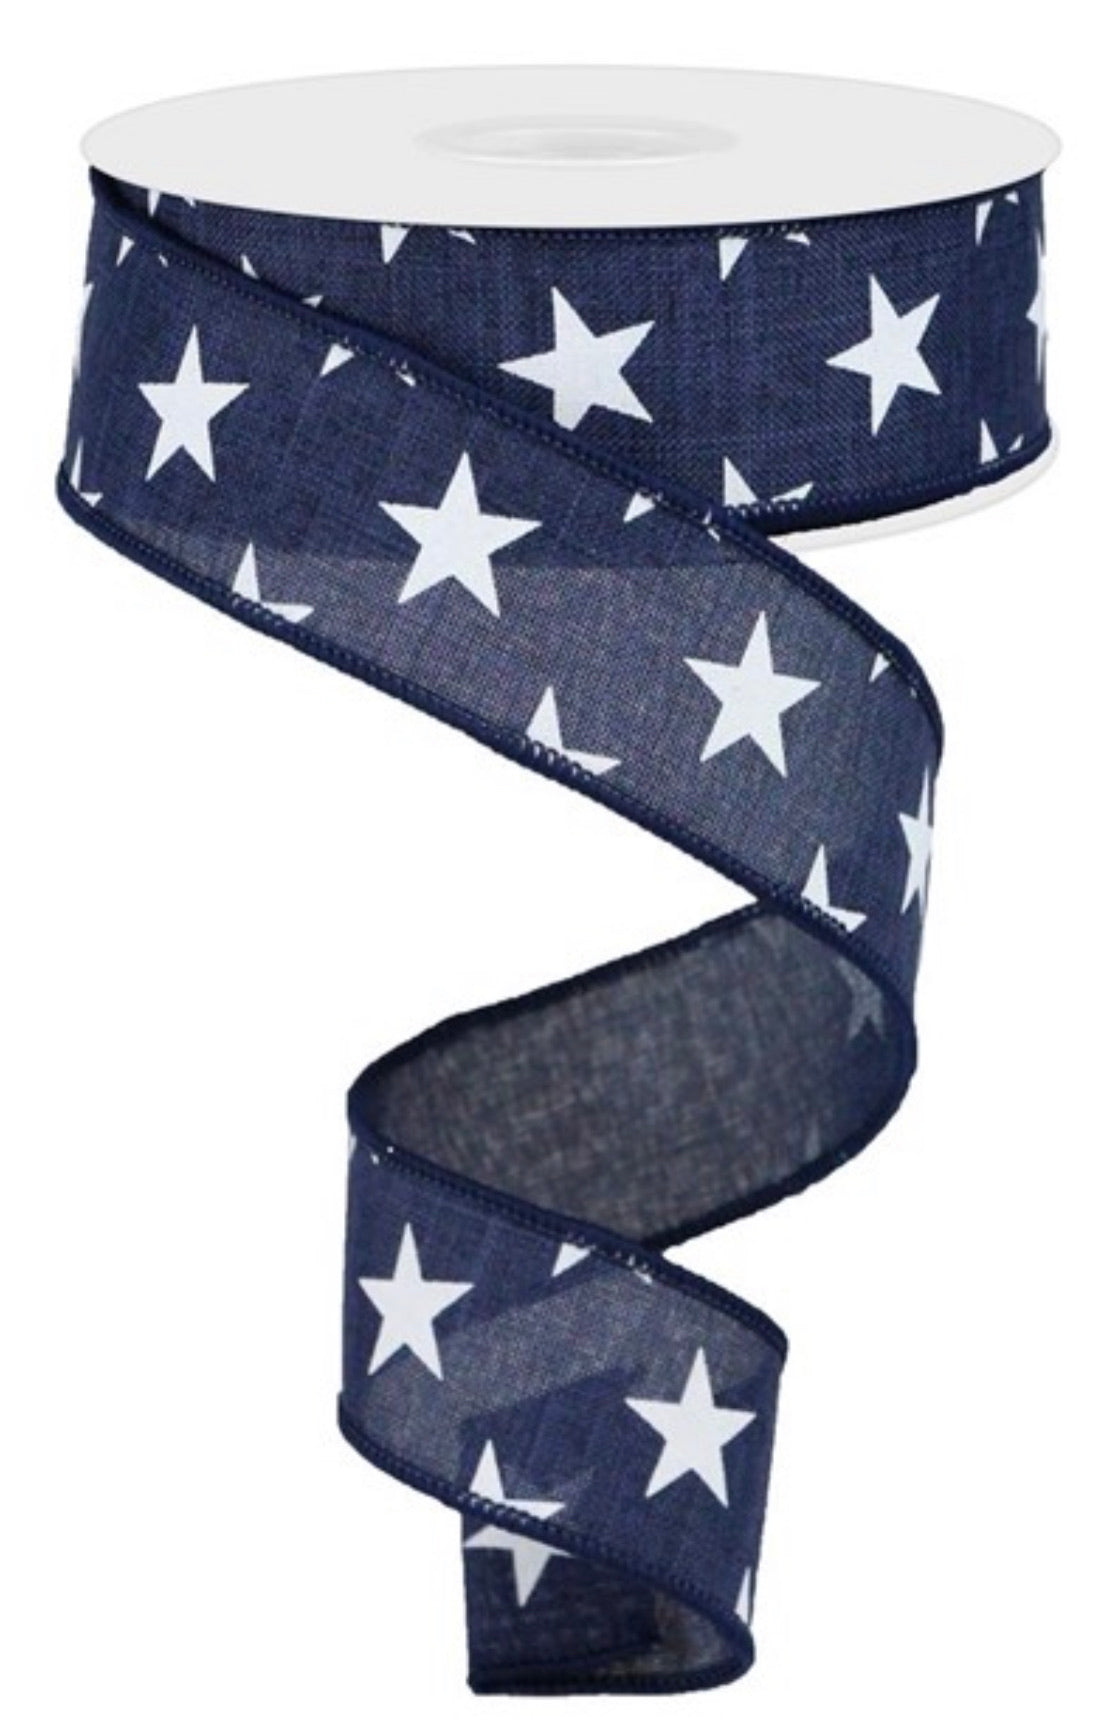 "Stars on navy blue wired ribbon 1.5"" - Greenery Market"